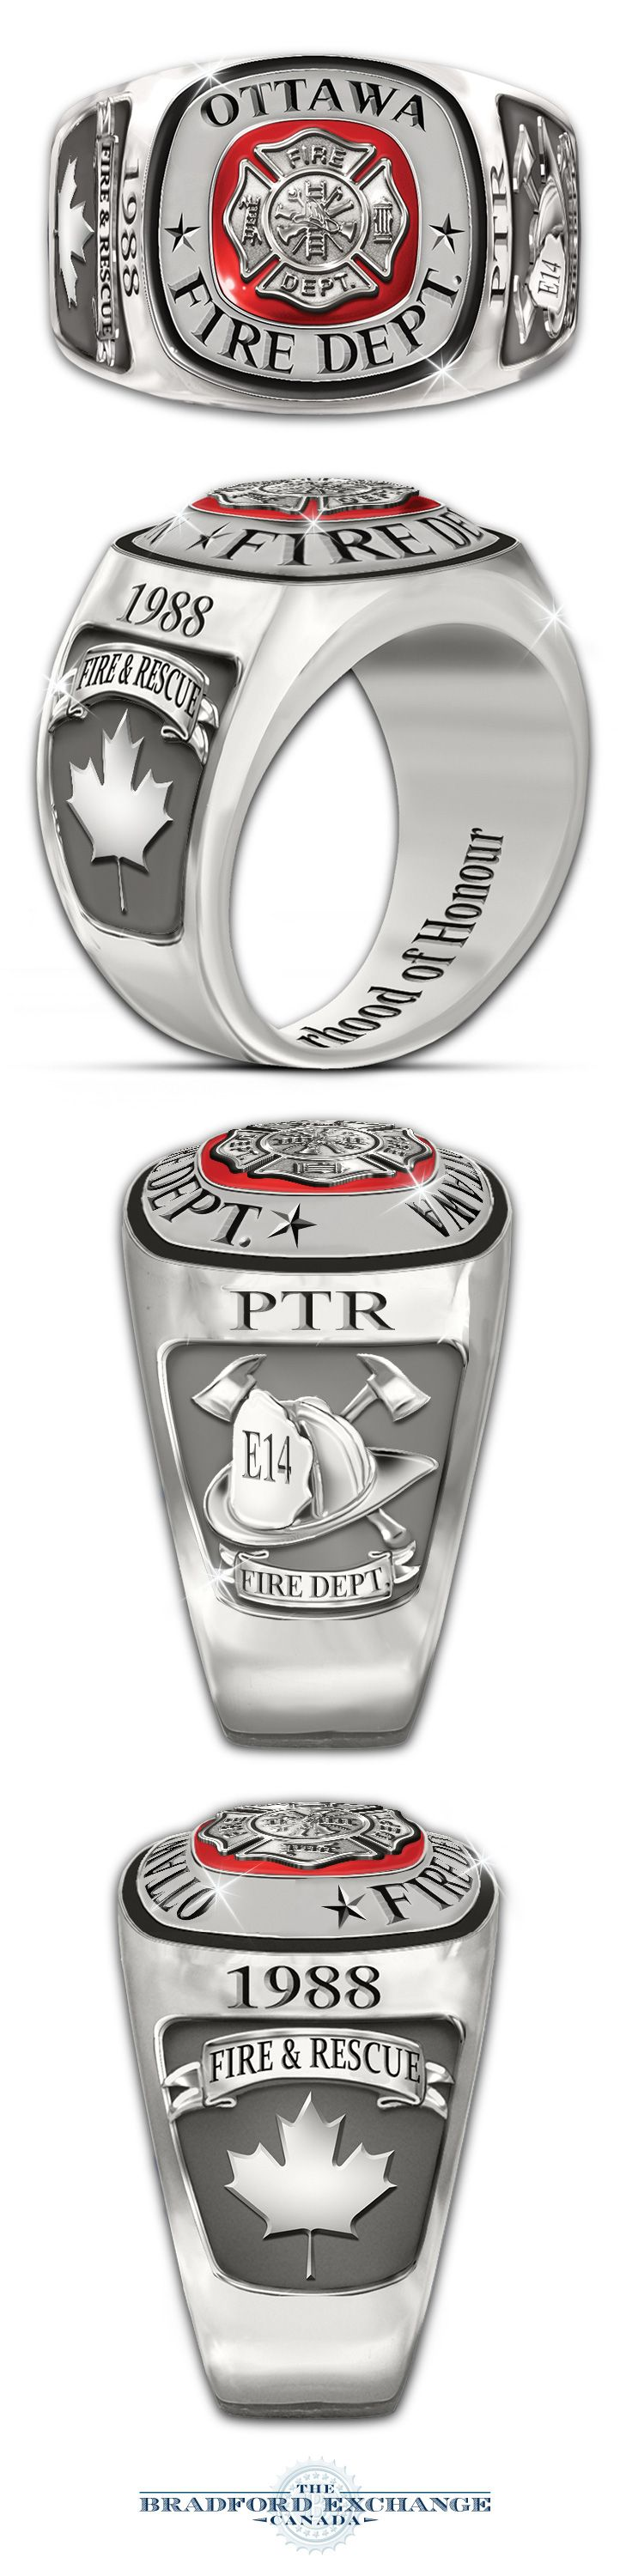 Solid stainless steel firefighters ring with Maltese cross, red enameling. Customize with city, initials, year and engine company number.